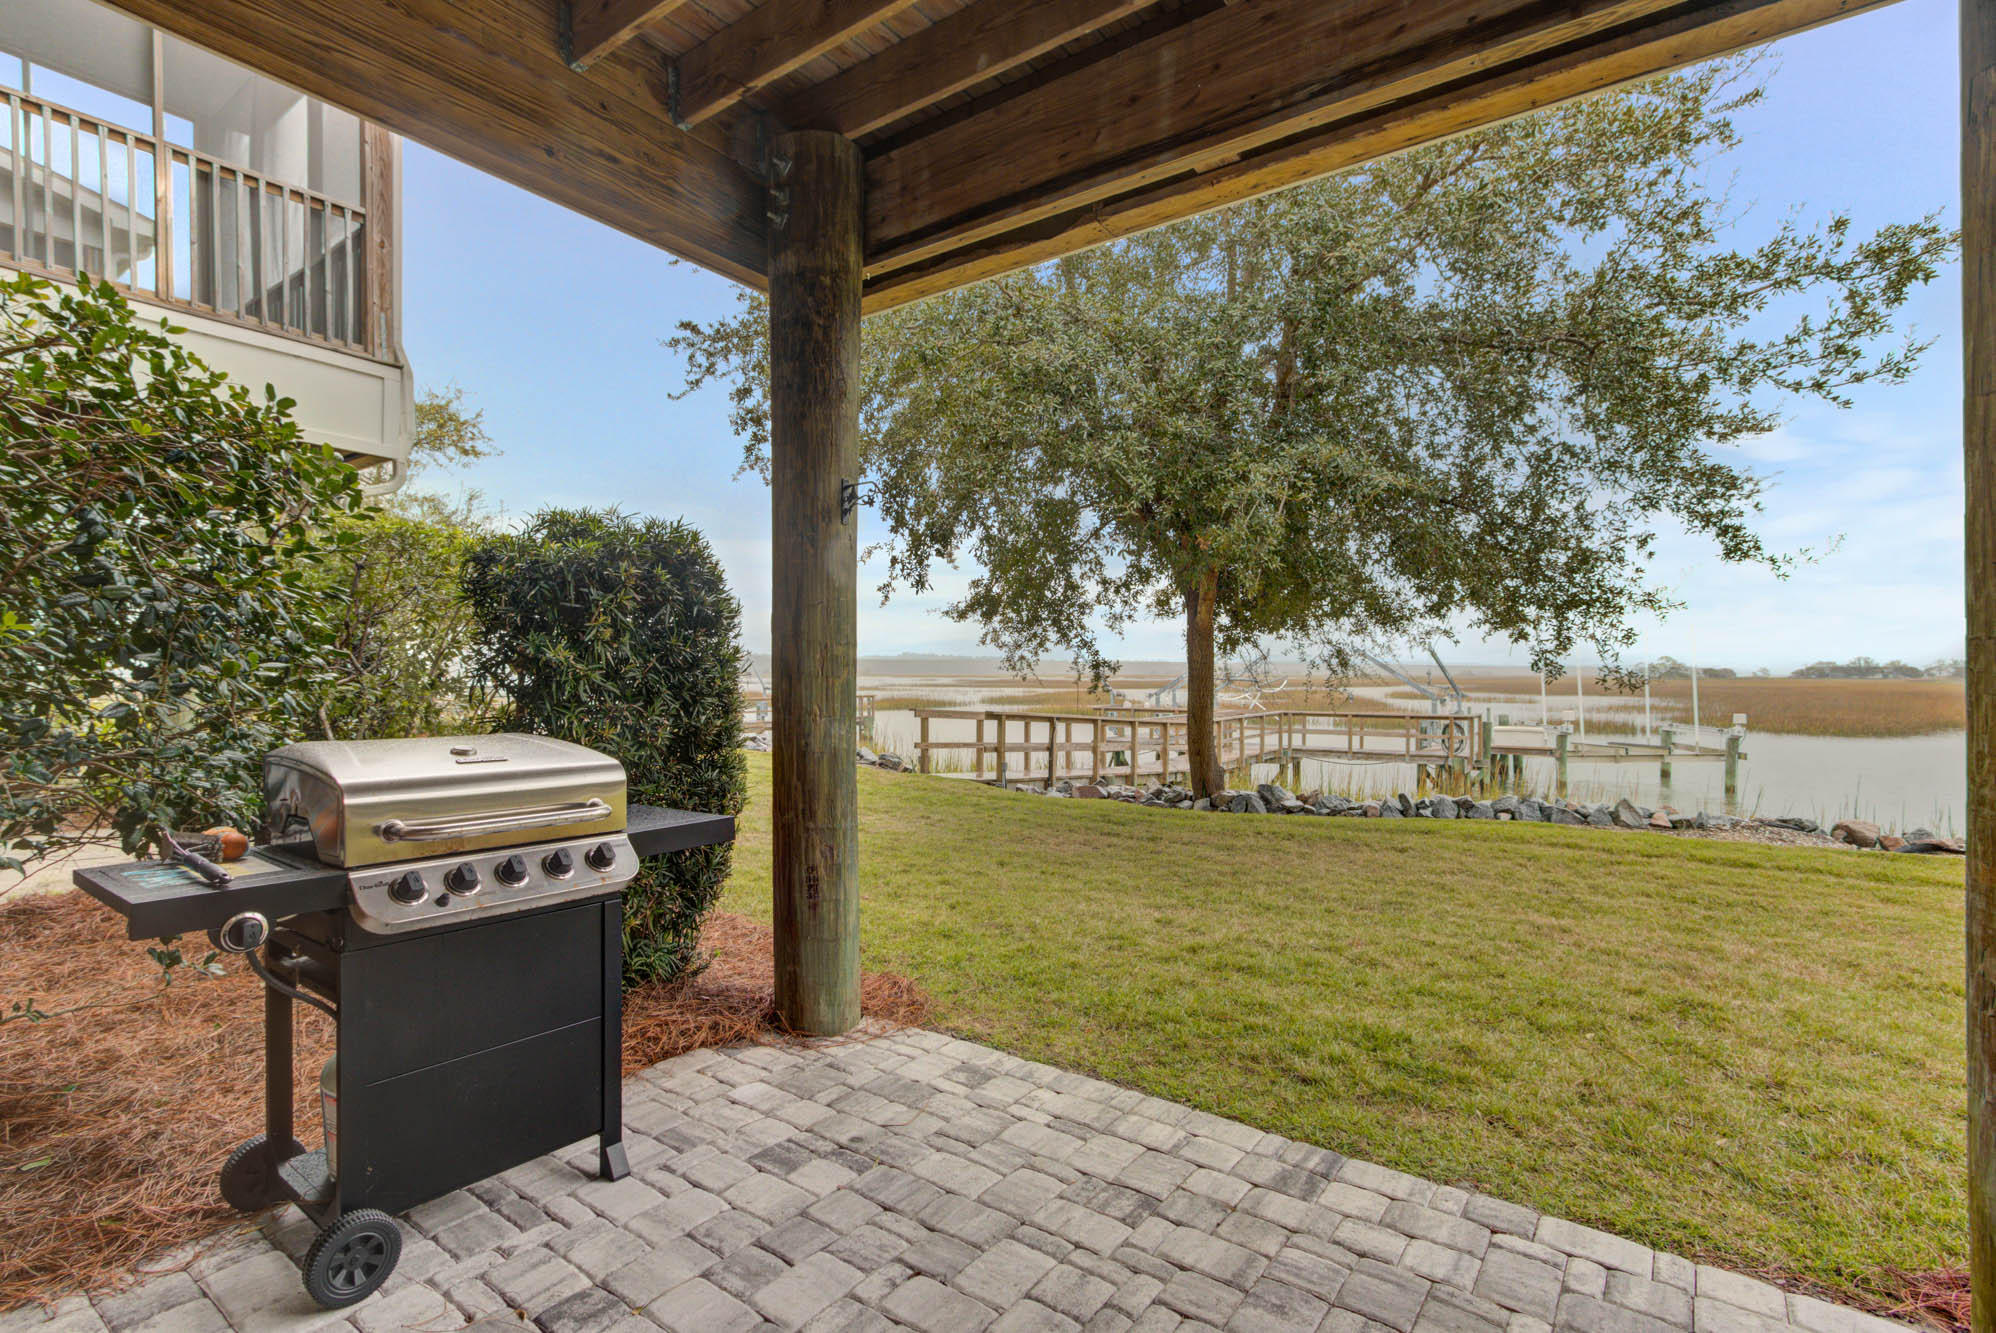 Folly Creek Place Homes For Sale - 2240 Folly, Folly Beach, SC - 7